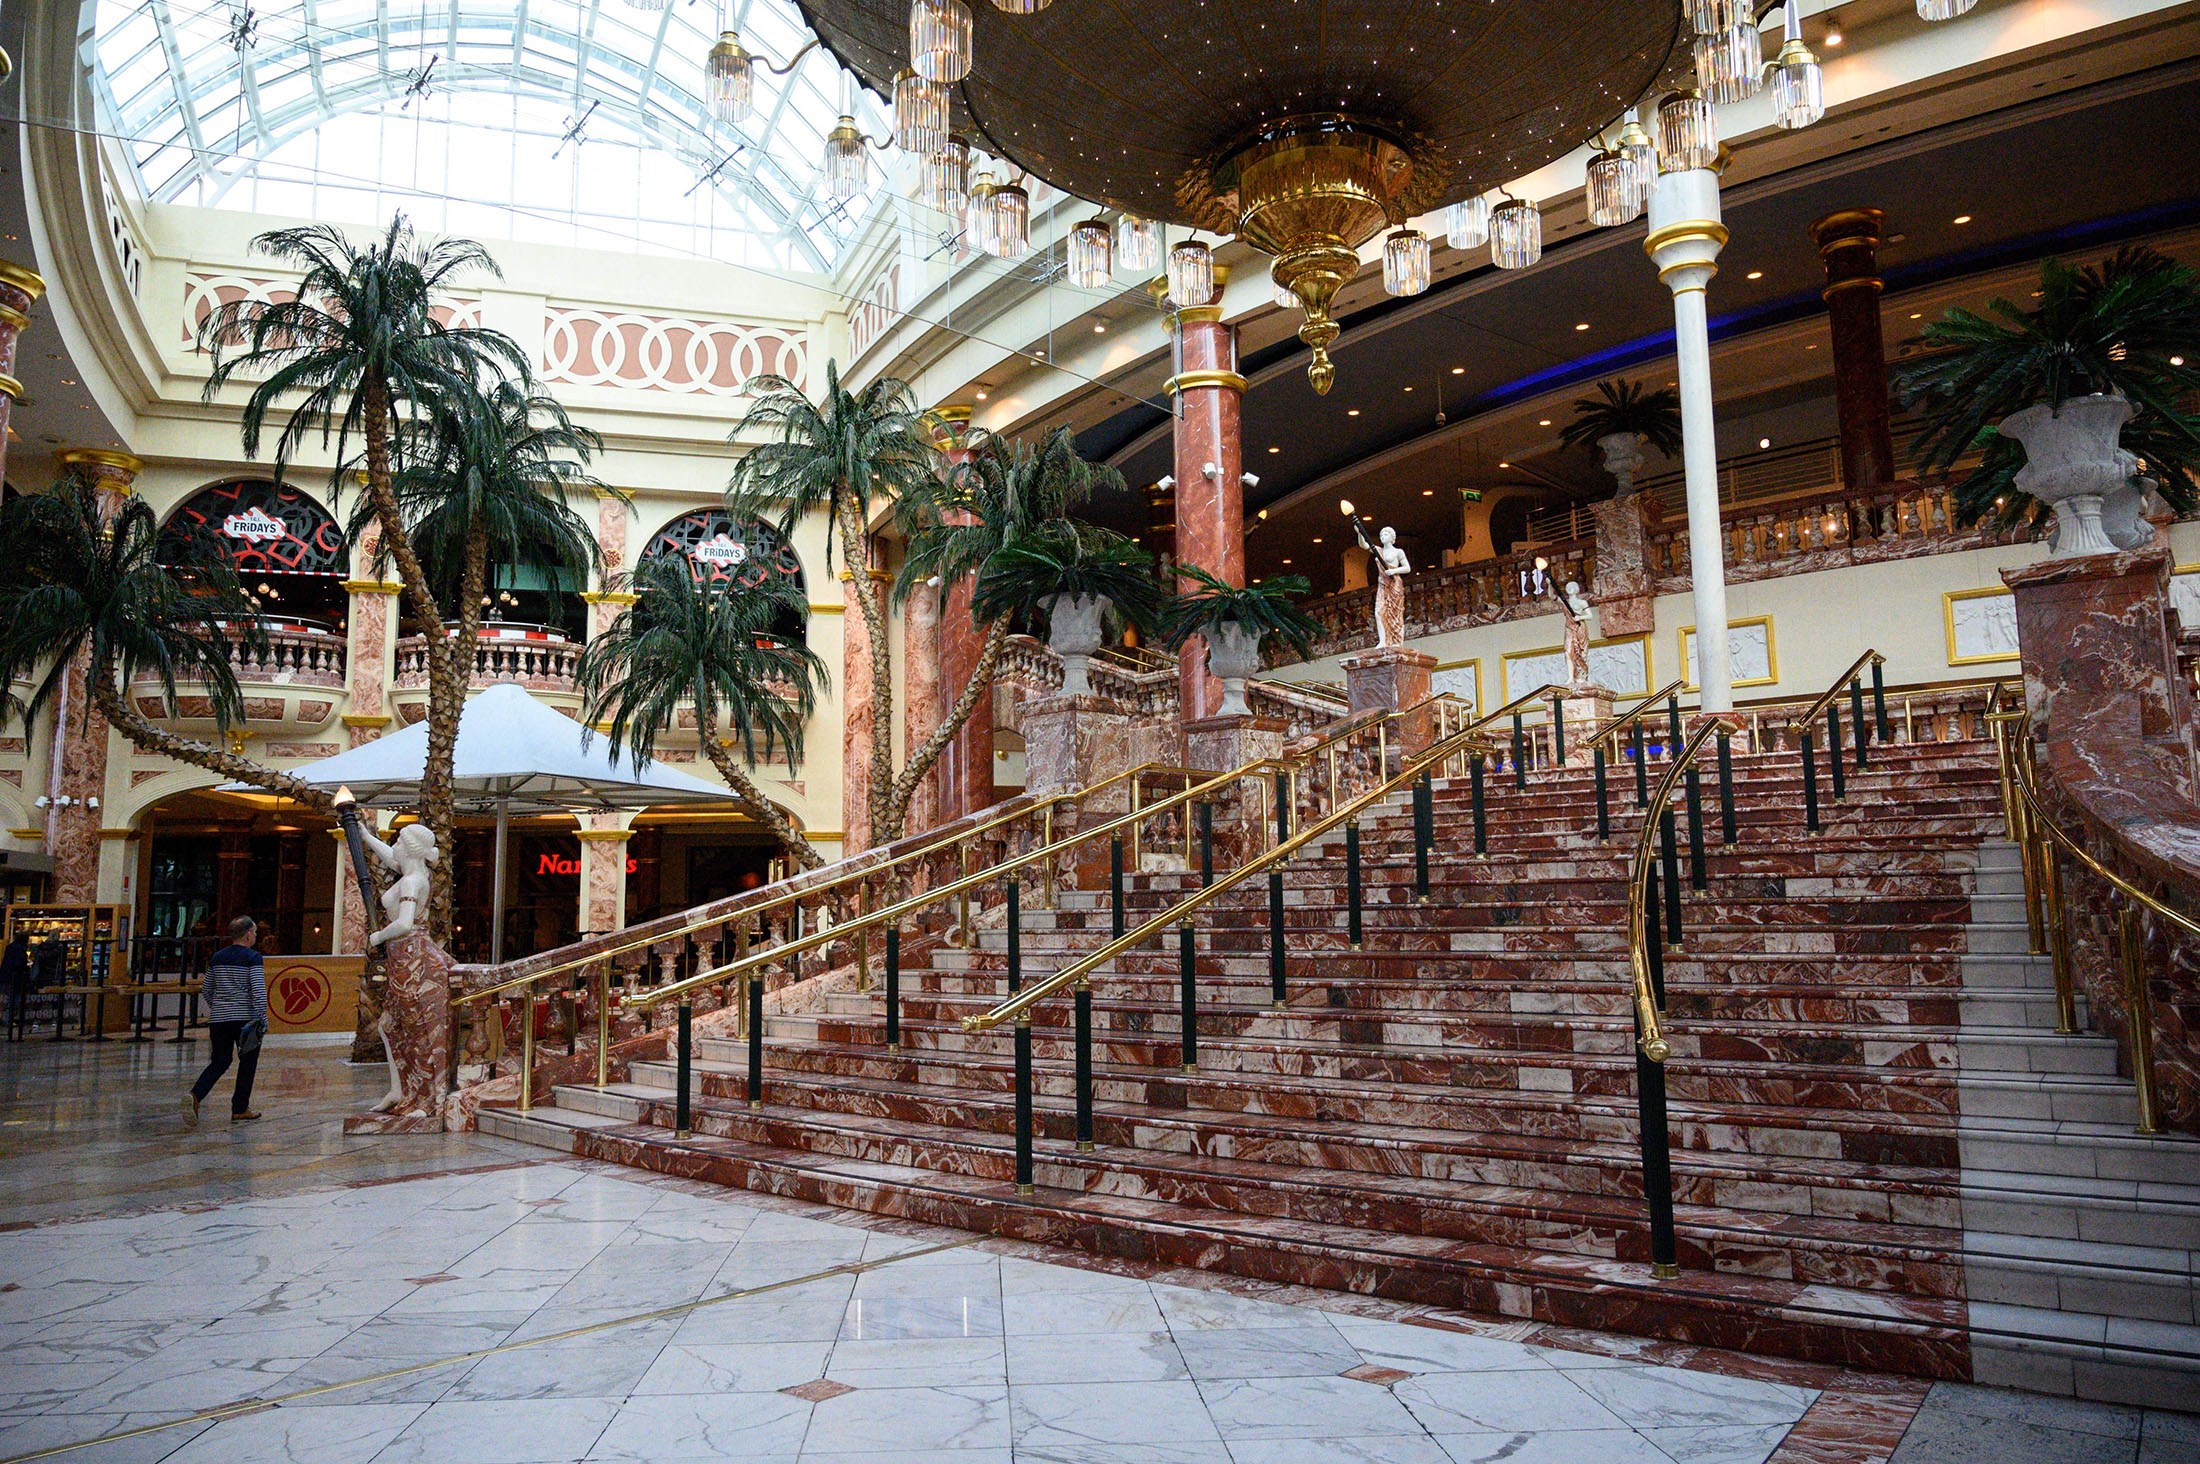 A shopper walks through a near-deserted Intu Trafford Centre shopping mall in Manchester, England, on March 20.